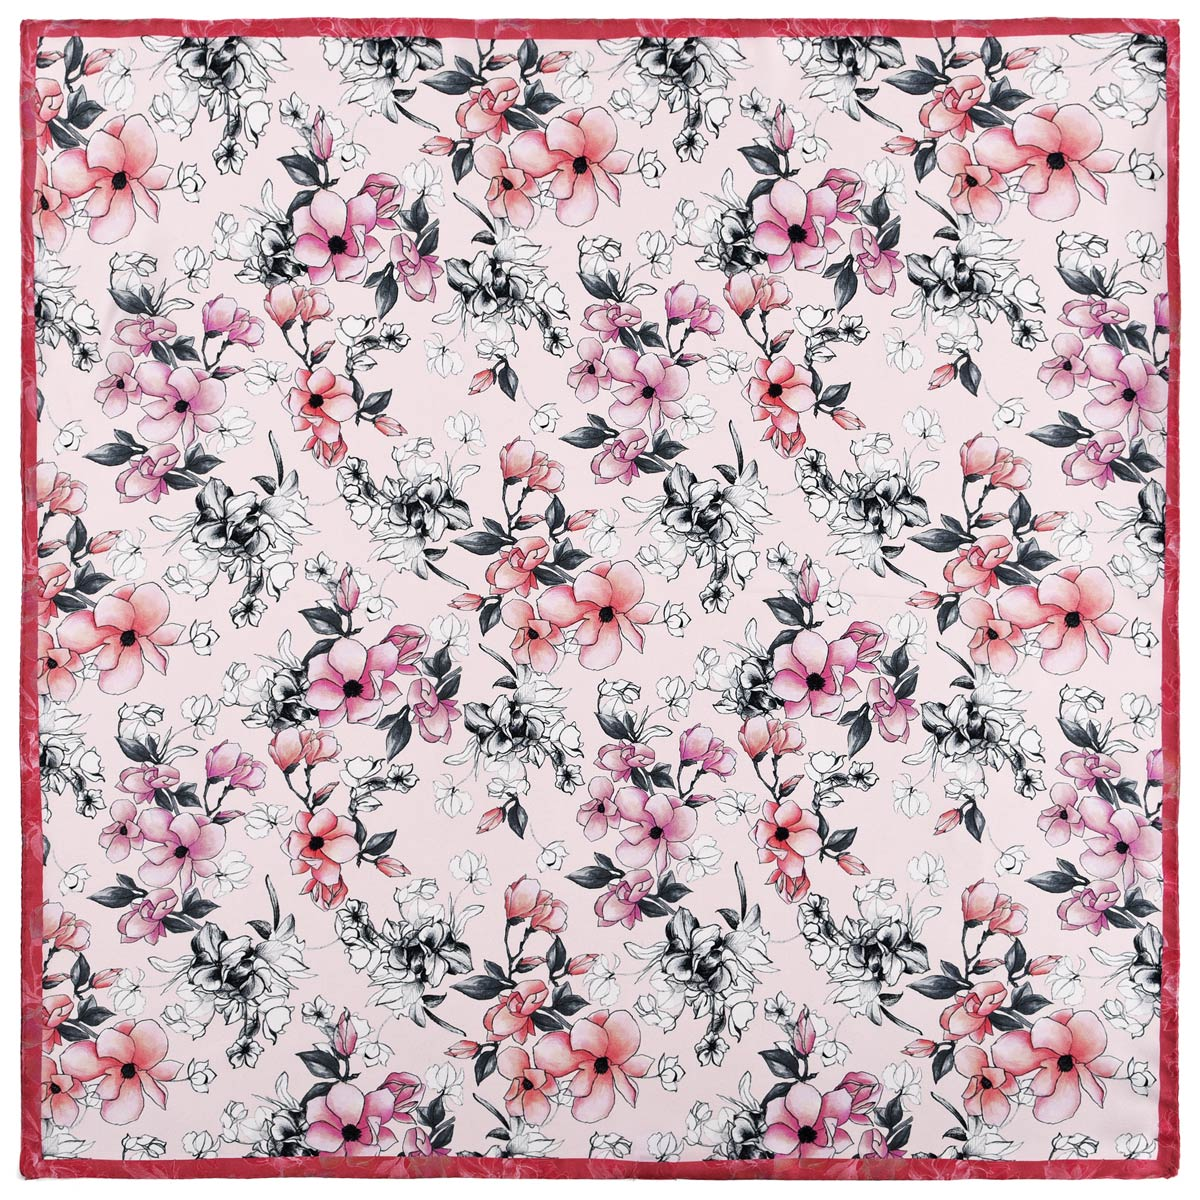 AT-05395_A12-1--_Carre-de-soie-floral-rose-rouge-made-in-italie